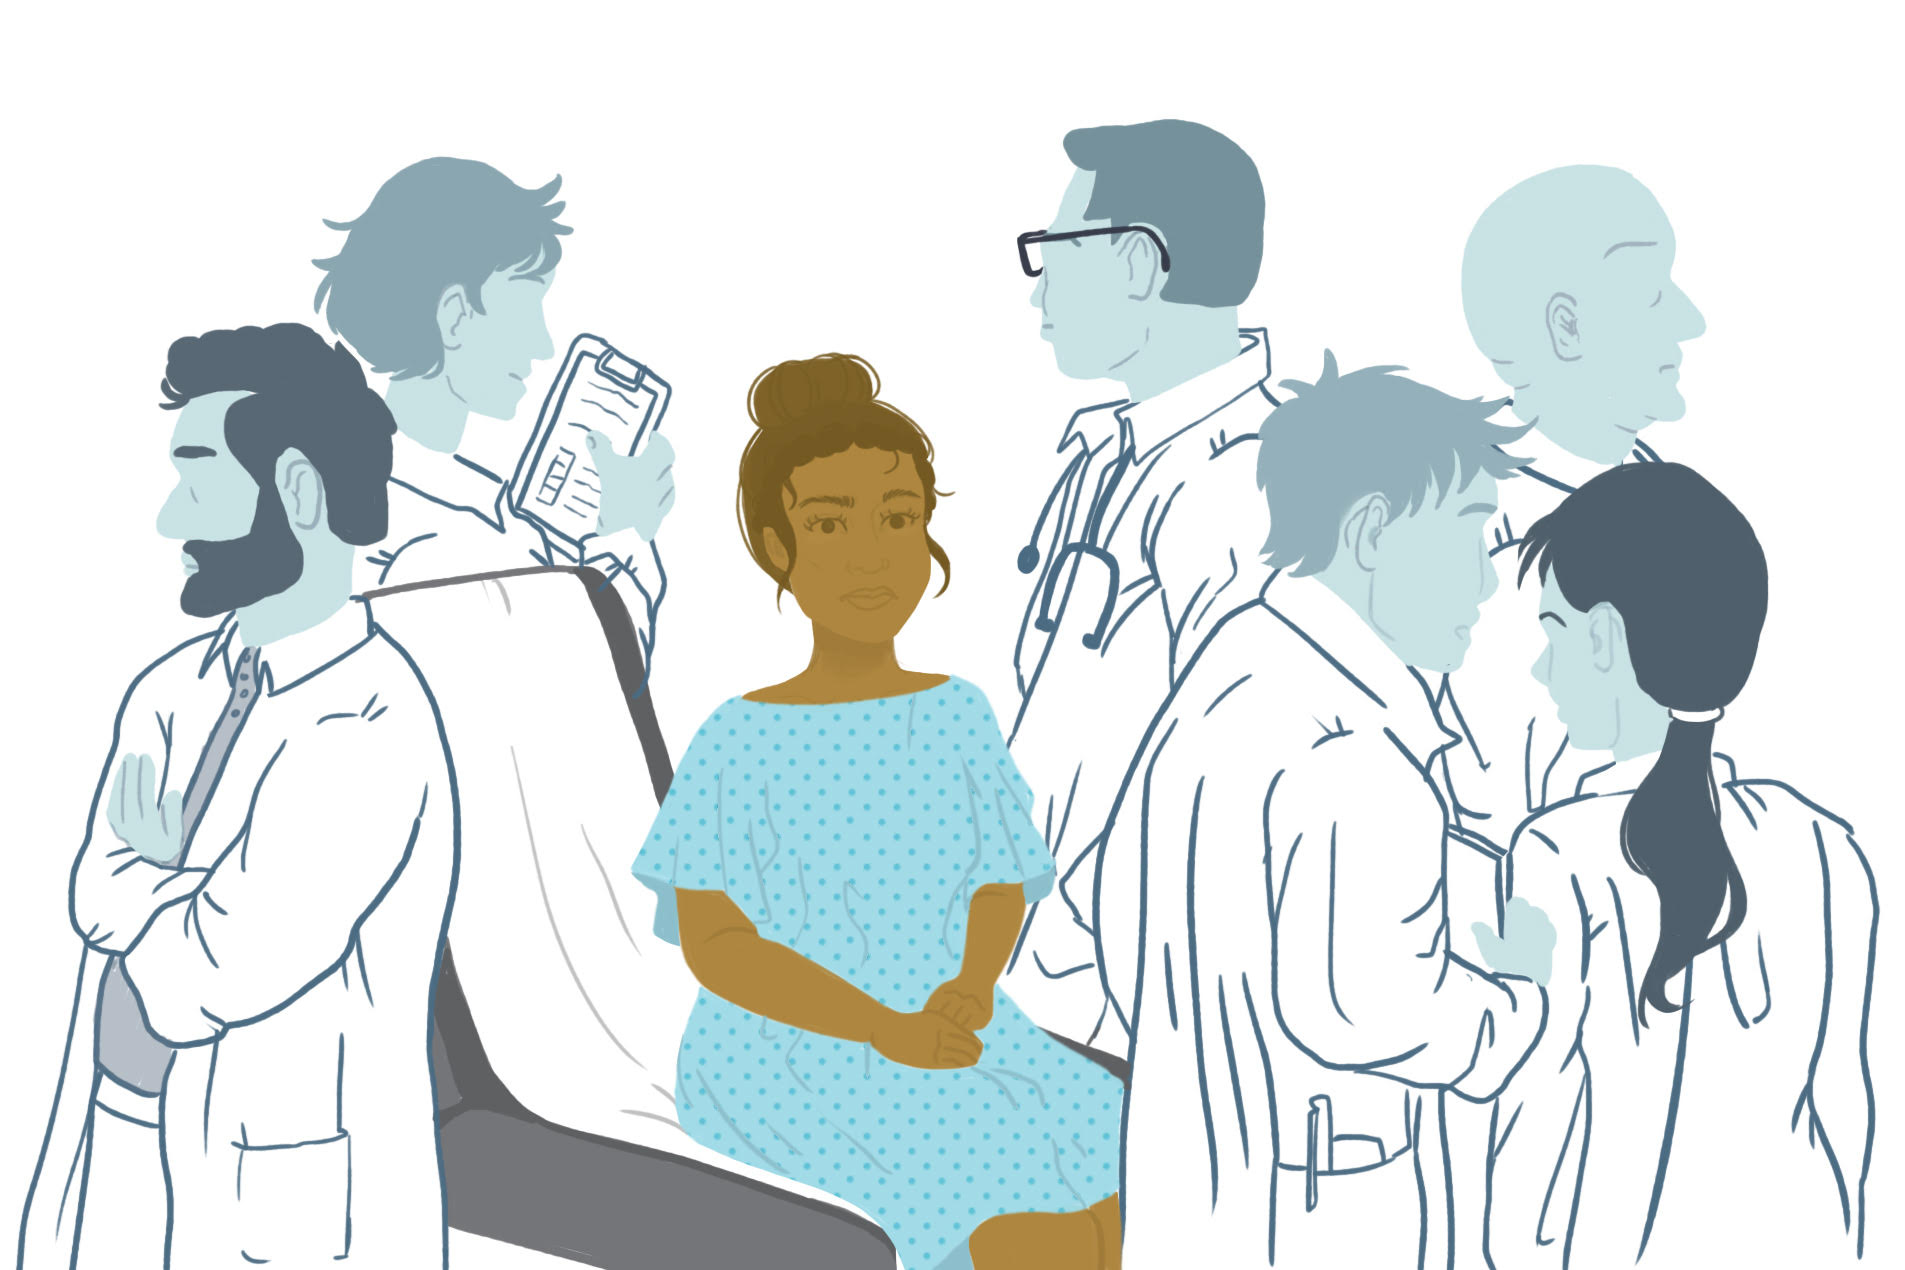 Diagnosis, expected: what I experienced during treatment shows health disparities aren't as random as we think